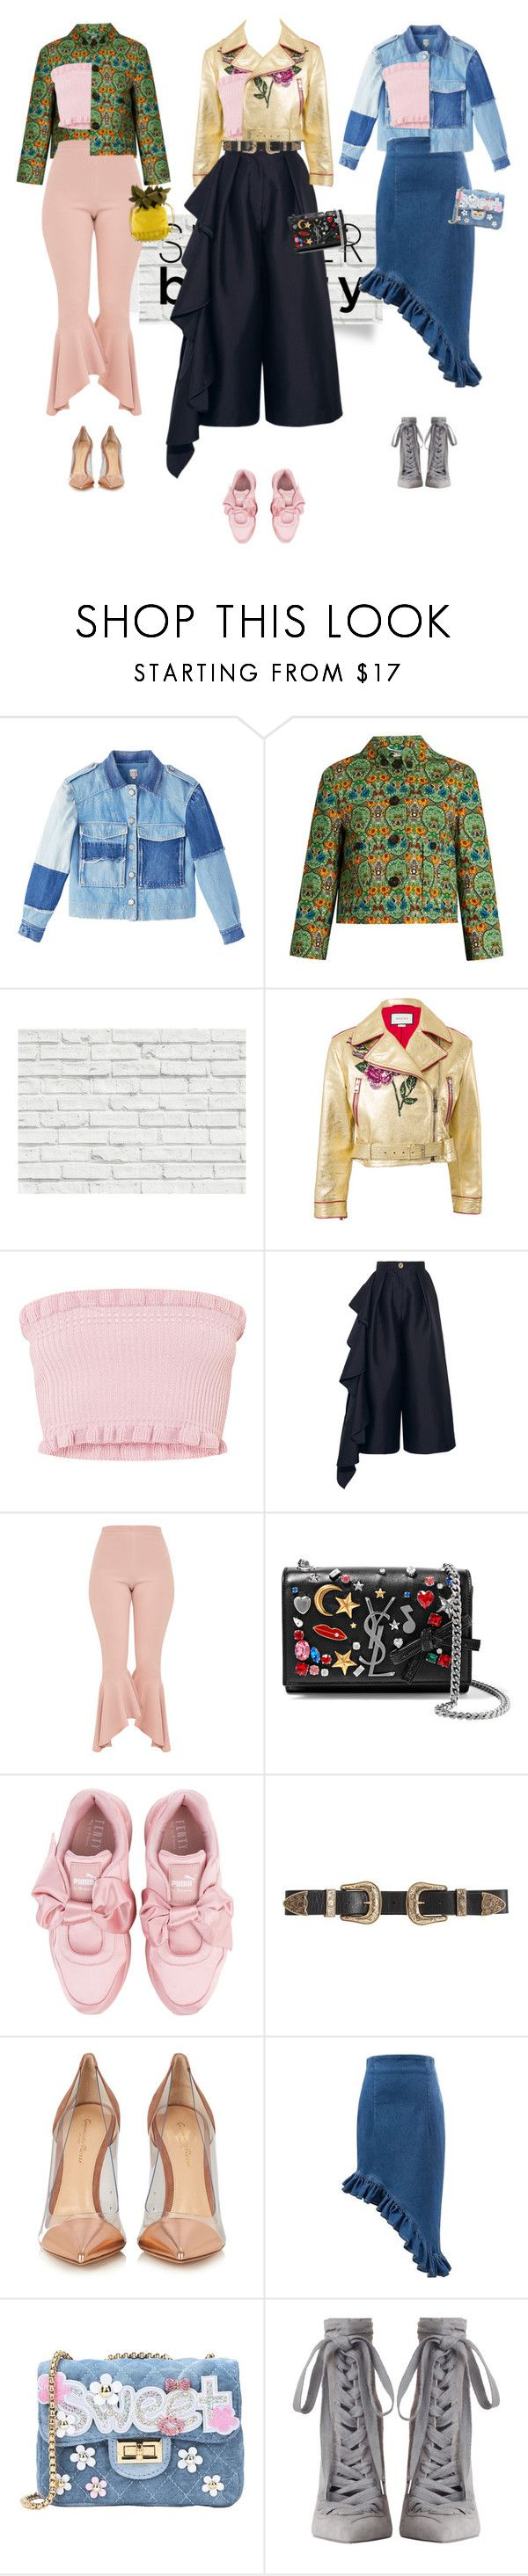 """""""1 crop 3 'fits - 1, 2 or 3 ?"""" by fairuzamoon ❤ liked on Polyvore featuring Miu Miu, Brewster Home Fashions, Gucci, Solace, Yves Saint Laurent, Puma, B-Low the Belt, Gianvito Rossi, George J. Love and Zimmermann"""